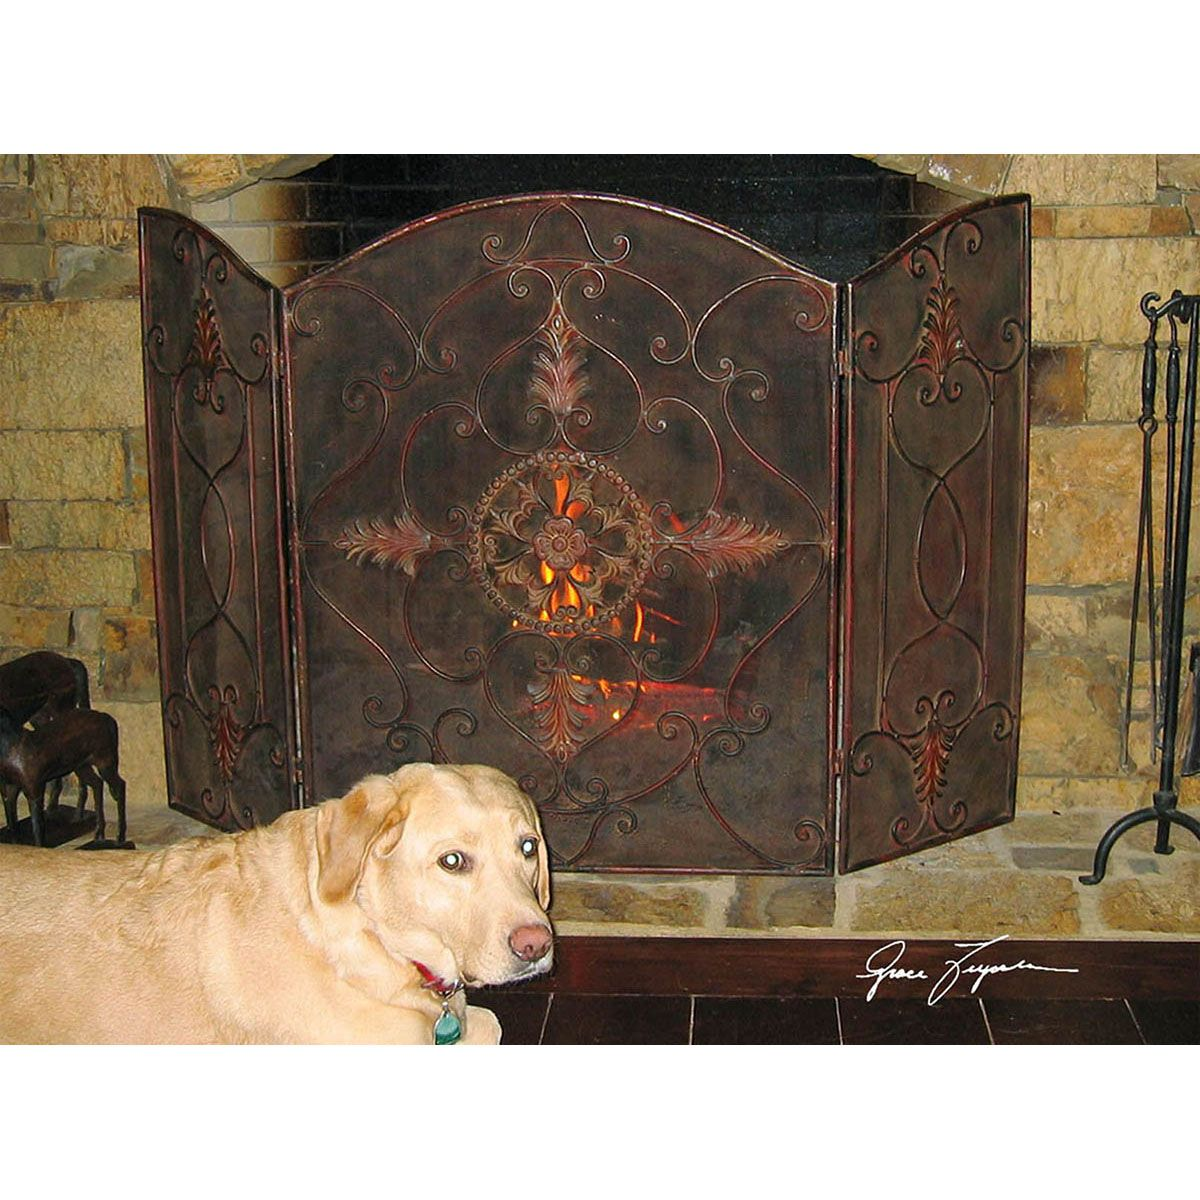 Groovy Uttermost Egan Wrought Iron Fireplace Screen 20508 Home Interior And Landscaping Ologienasavecom